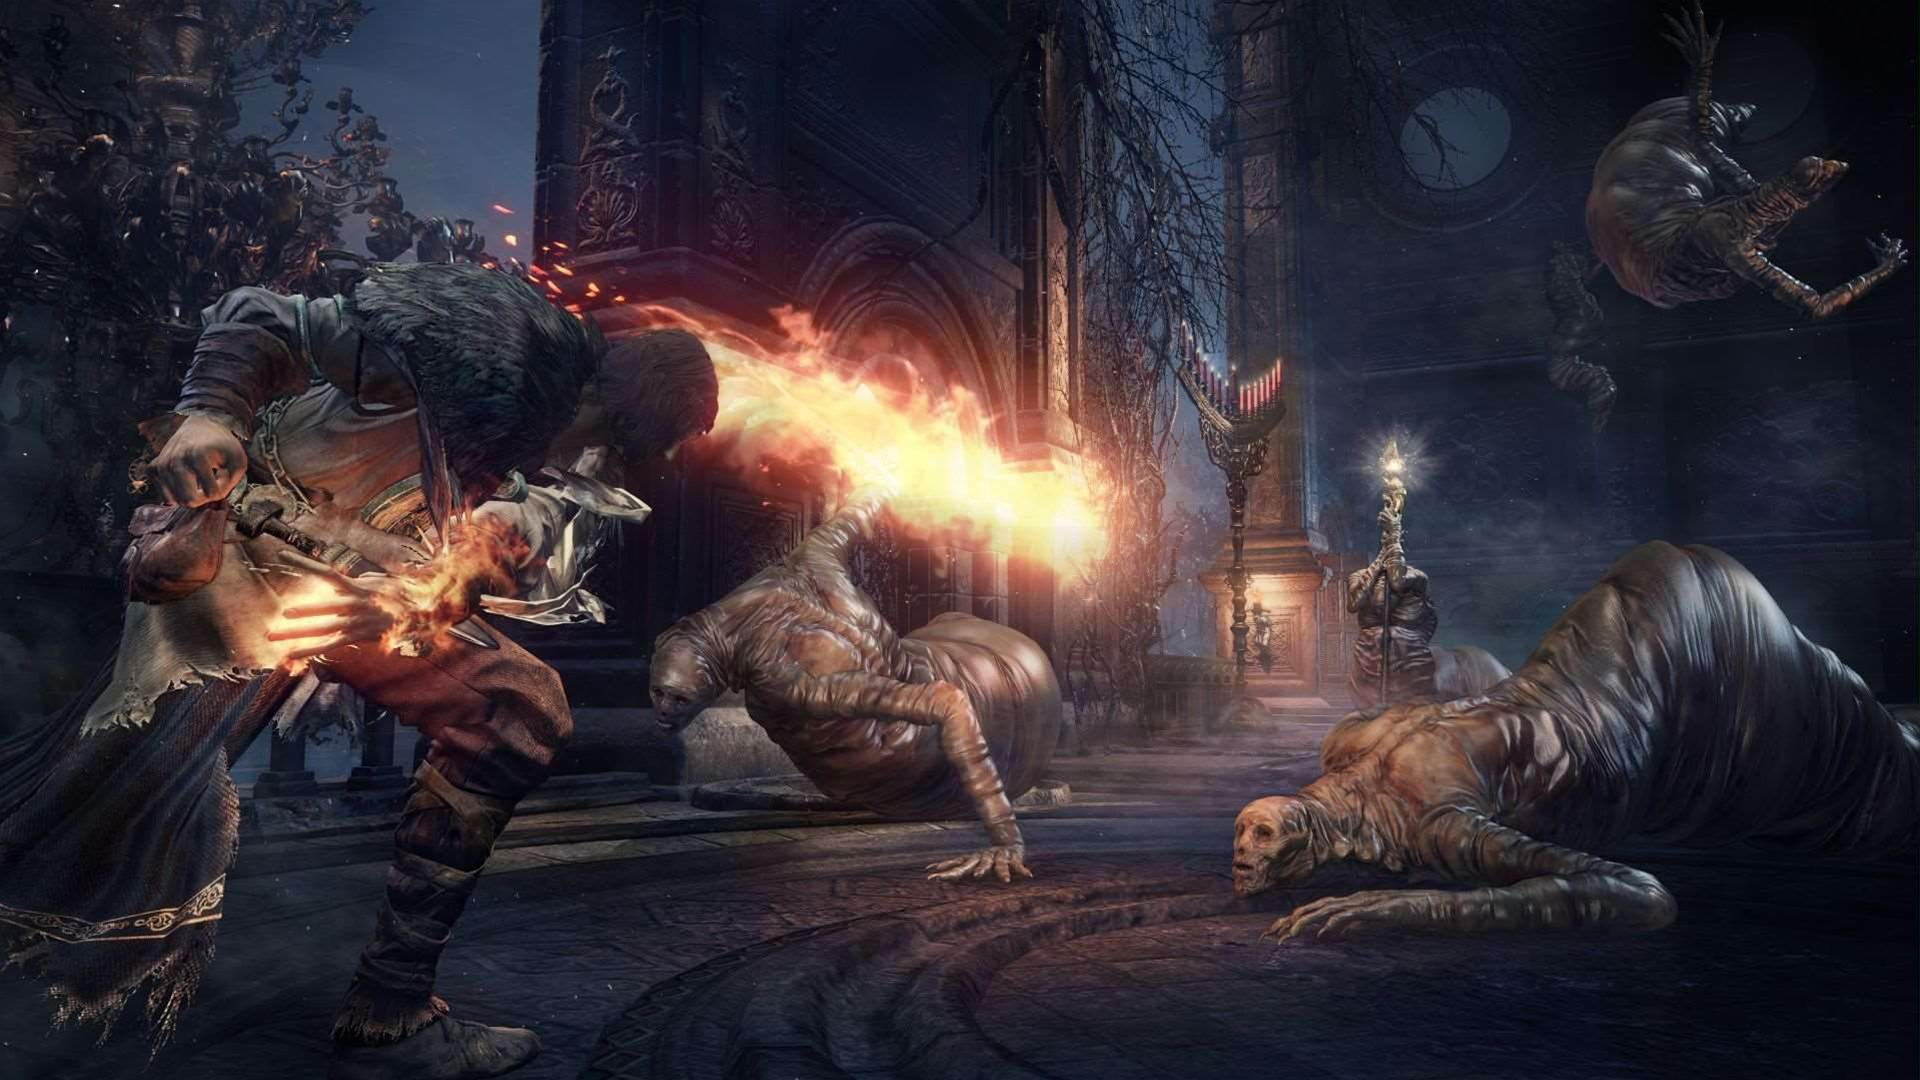 New screens and art from Dark Souls 3